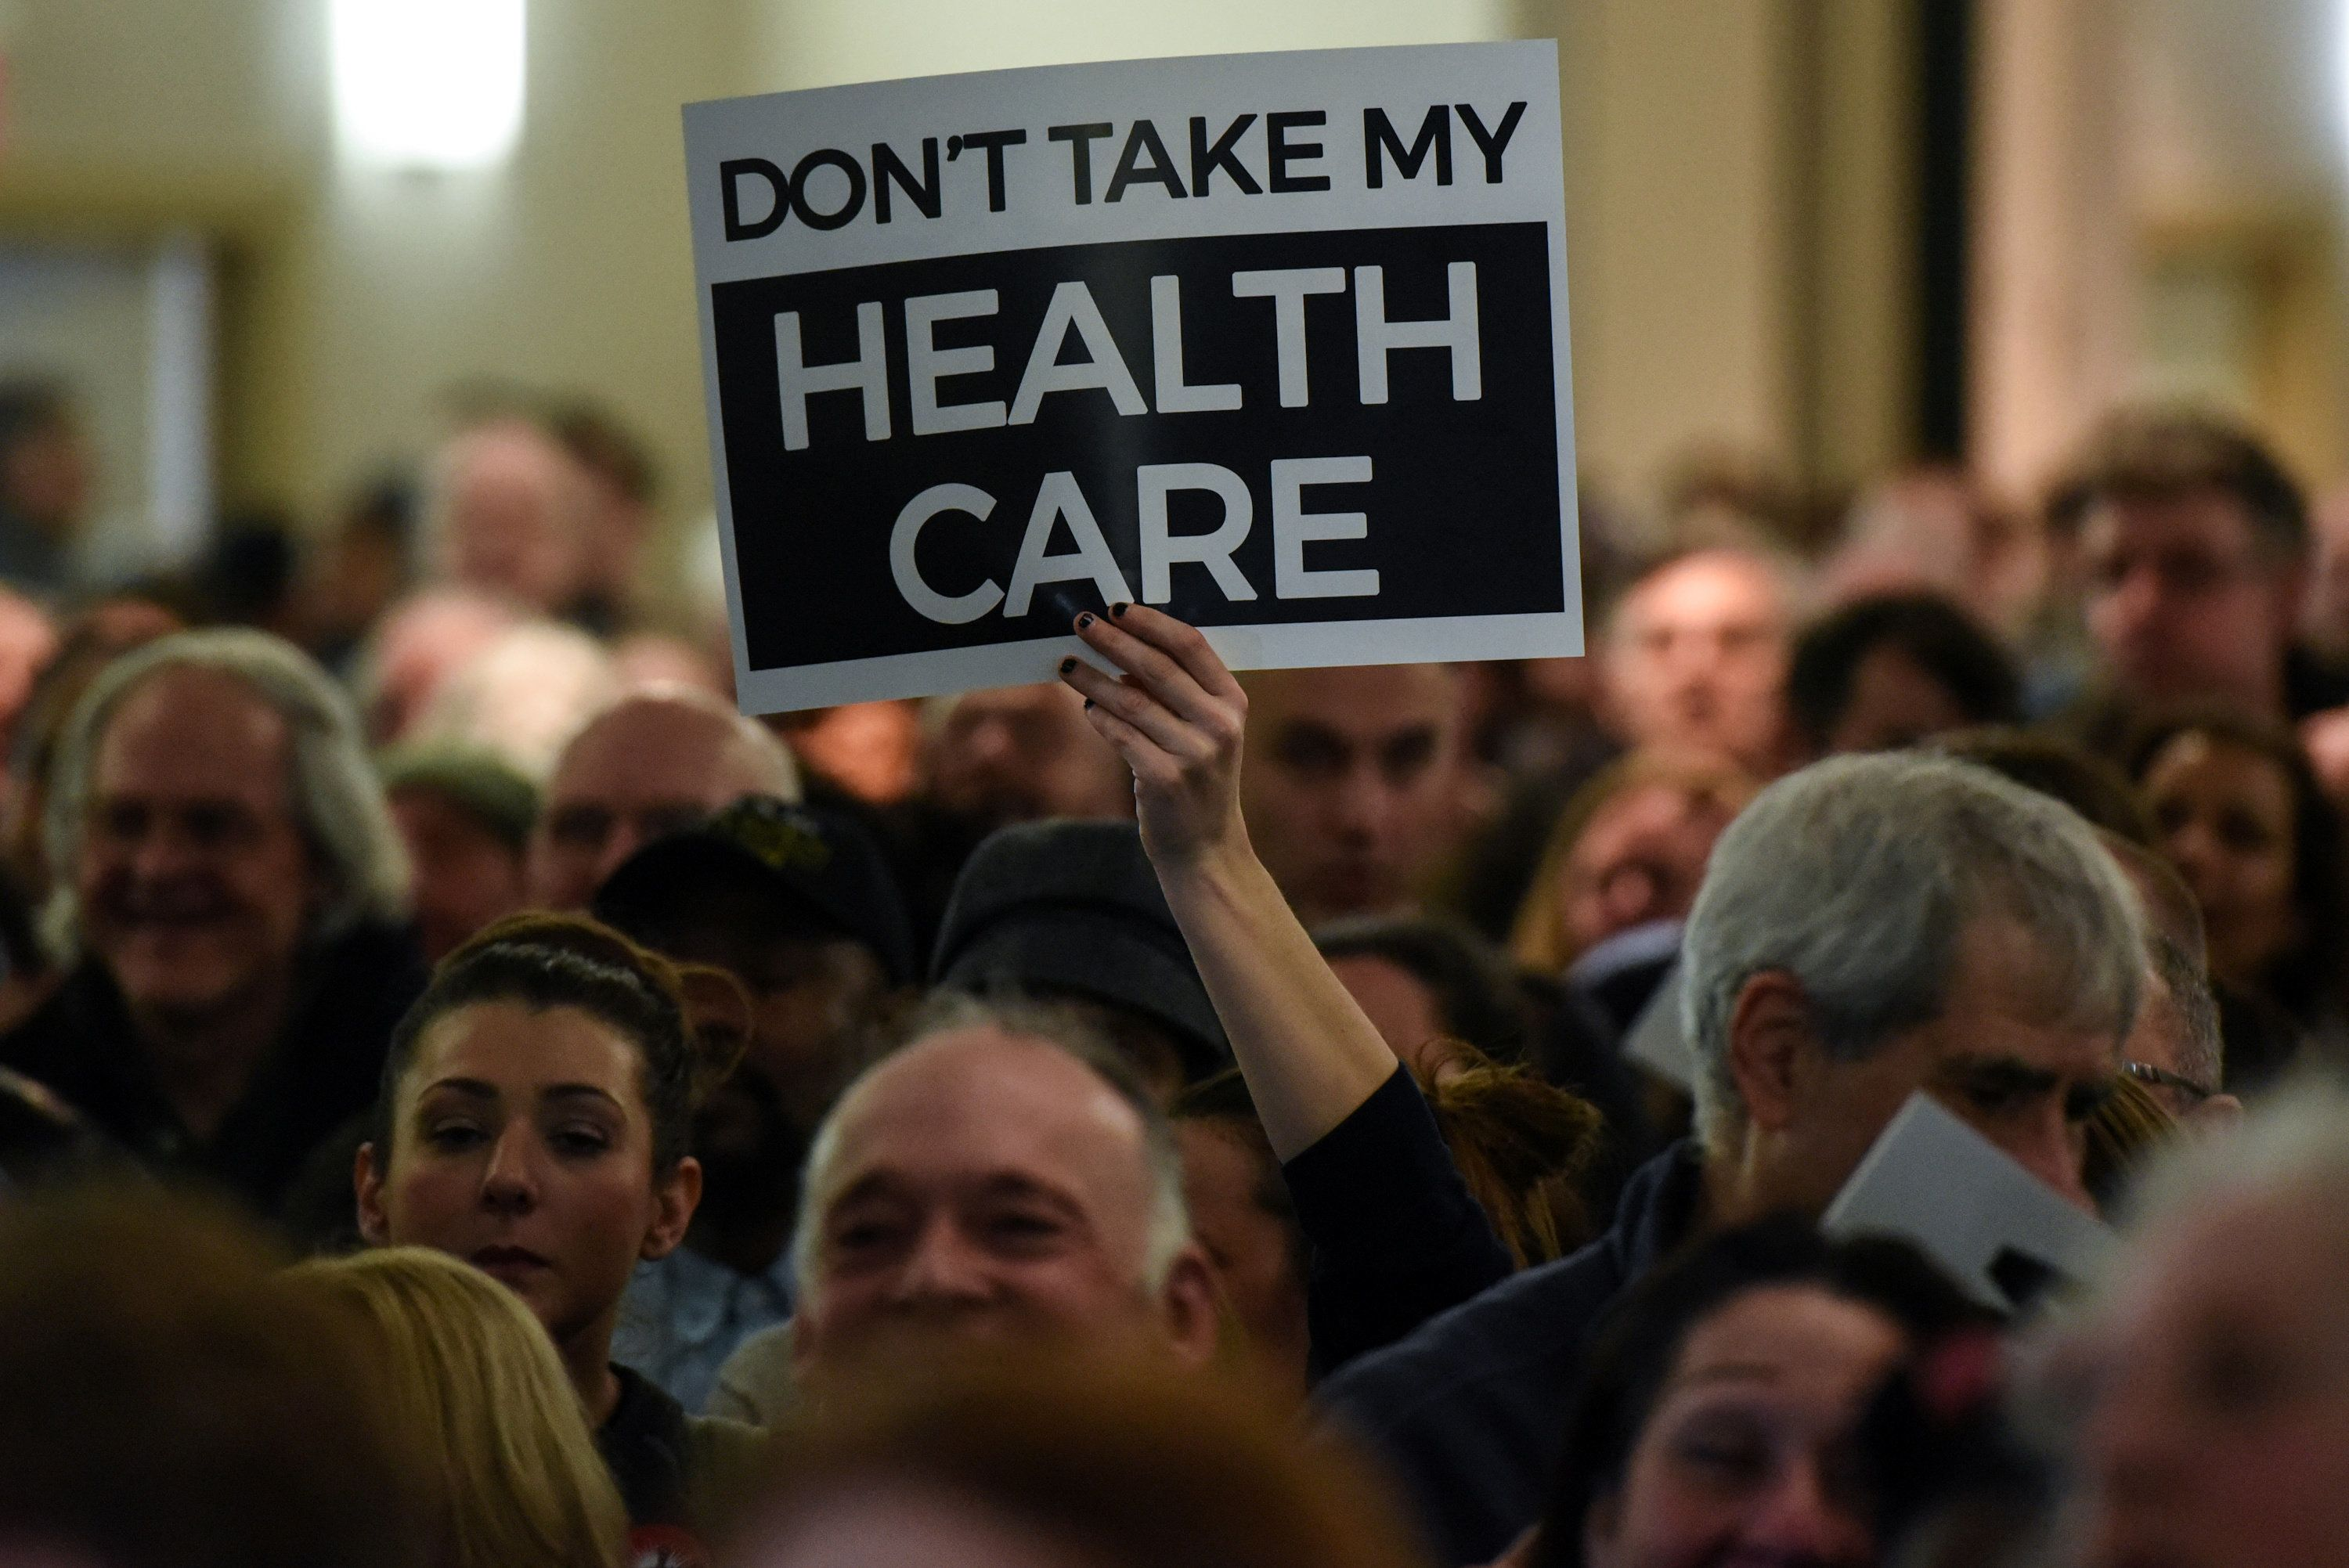 People demonstrate for the Affordable Care Act and against Trump during the First Stand Rally in Newark, N.J., U.S. January 15, 2017. REUTERS/Stephanie Keith